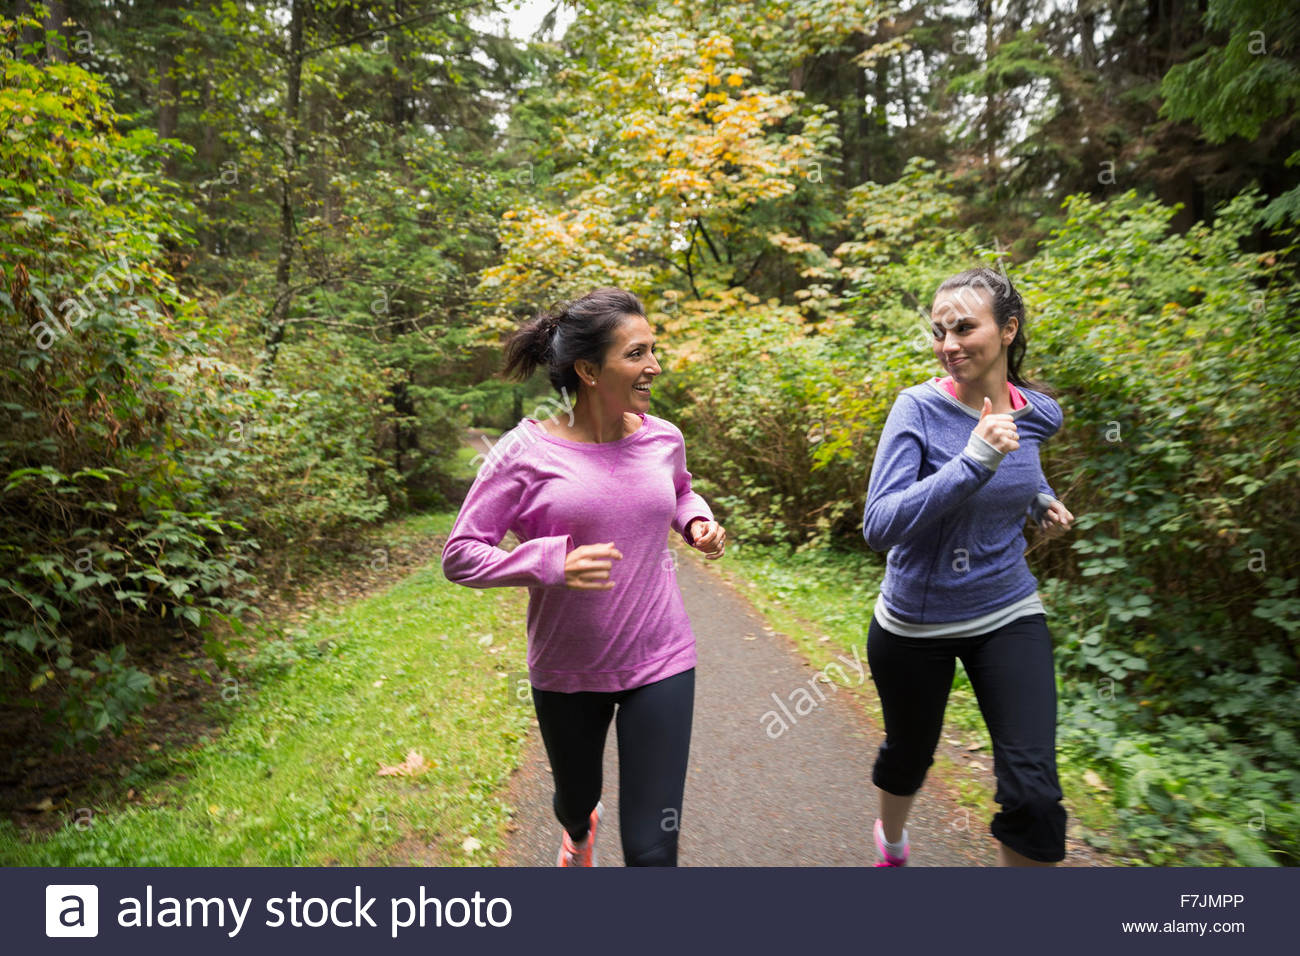 Mother and daughter jogging on path in woods - Stock Image